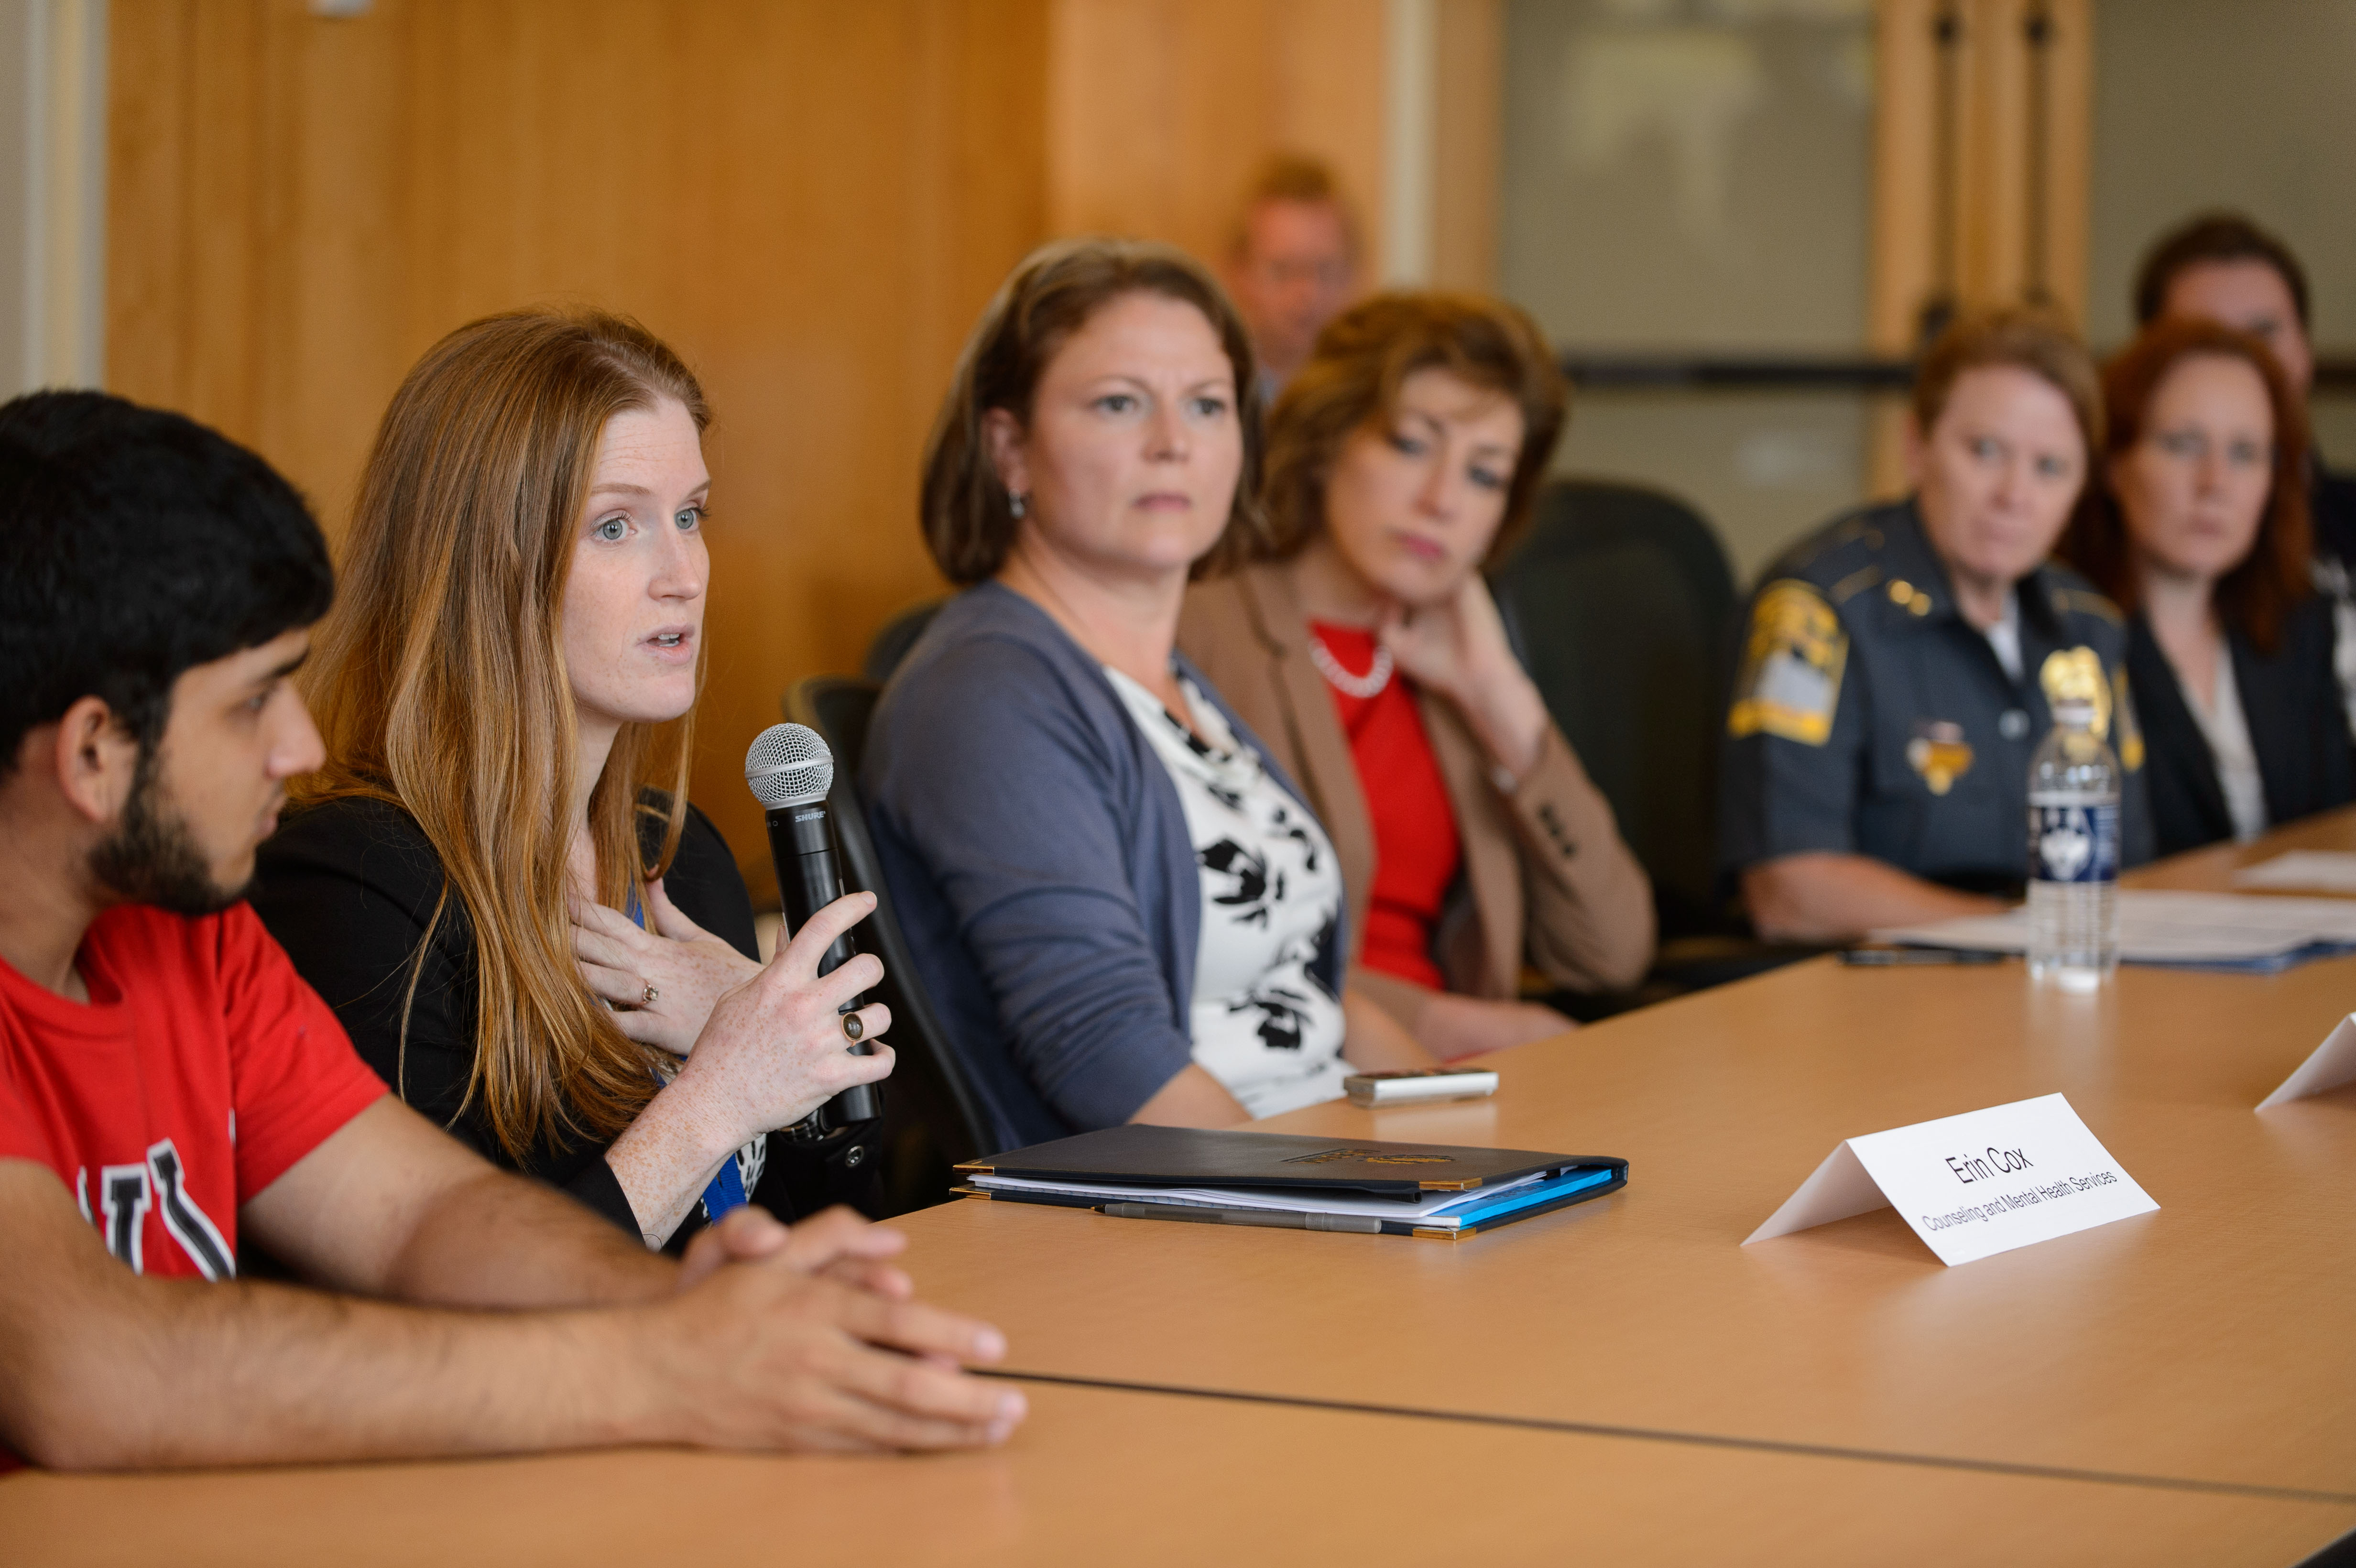 Uconn Leaders Students Discuss Campus Safety Preparations Uconn Today